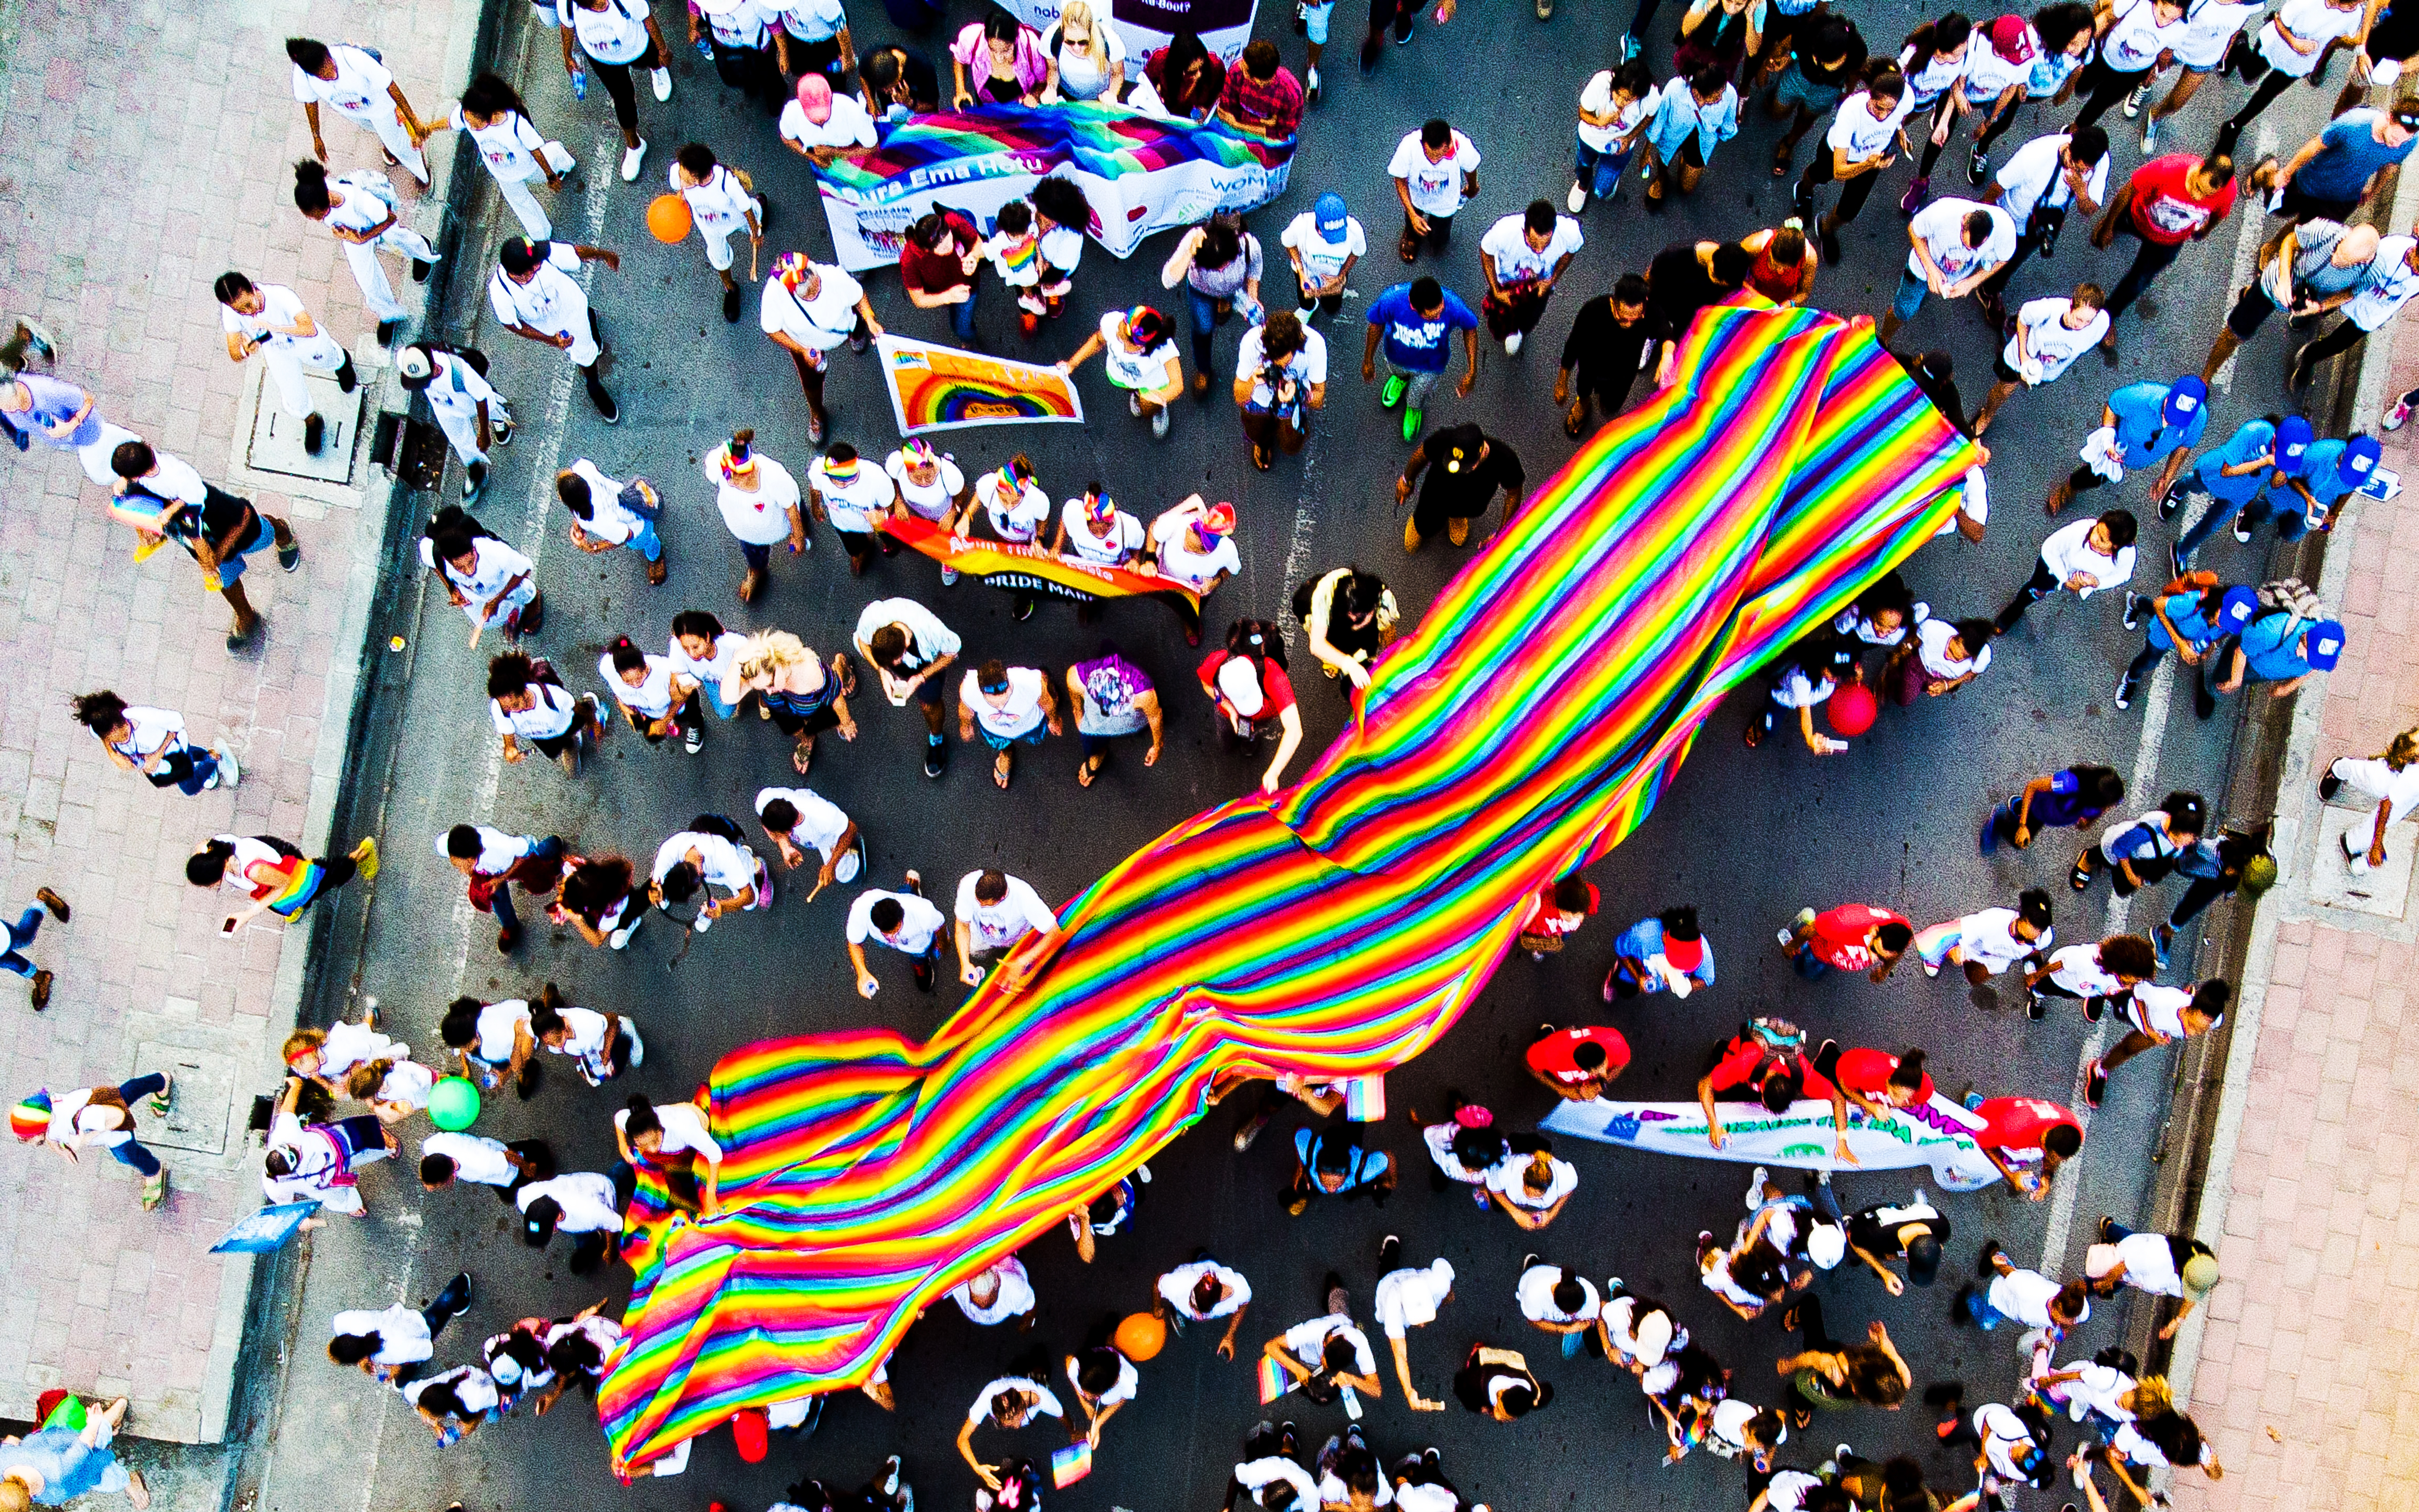 A crowd of Pride marchers holds up a rainbow Pride flag, shot from above.